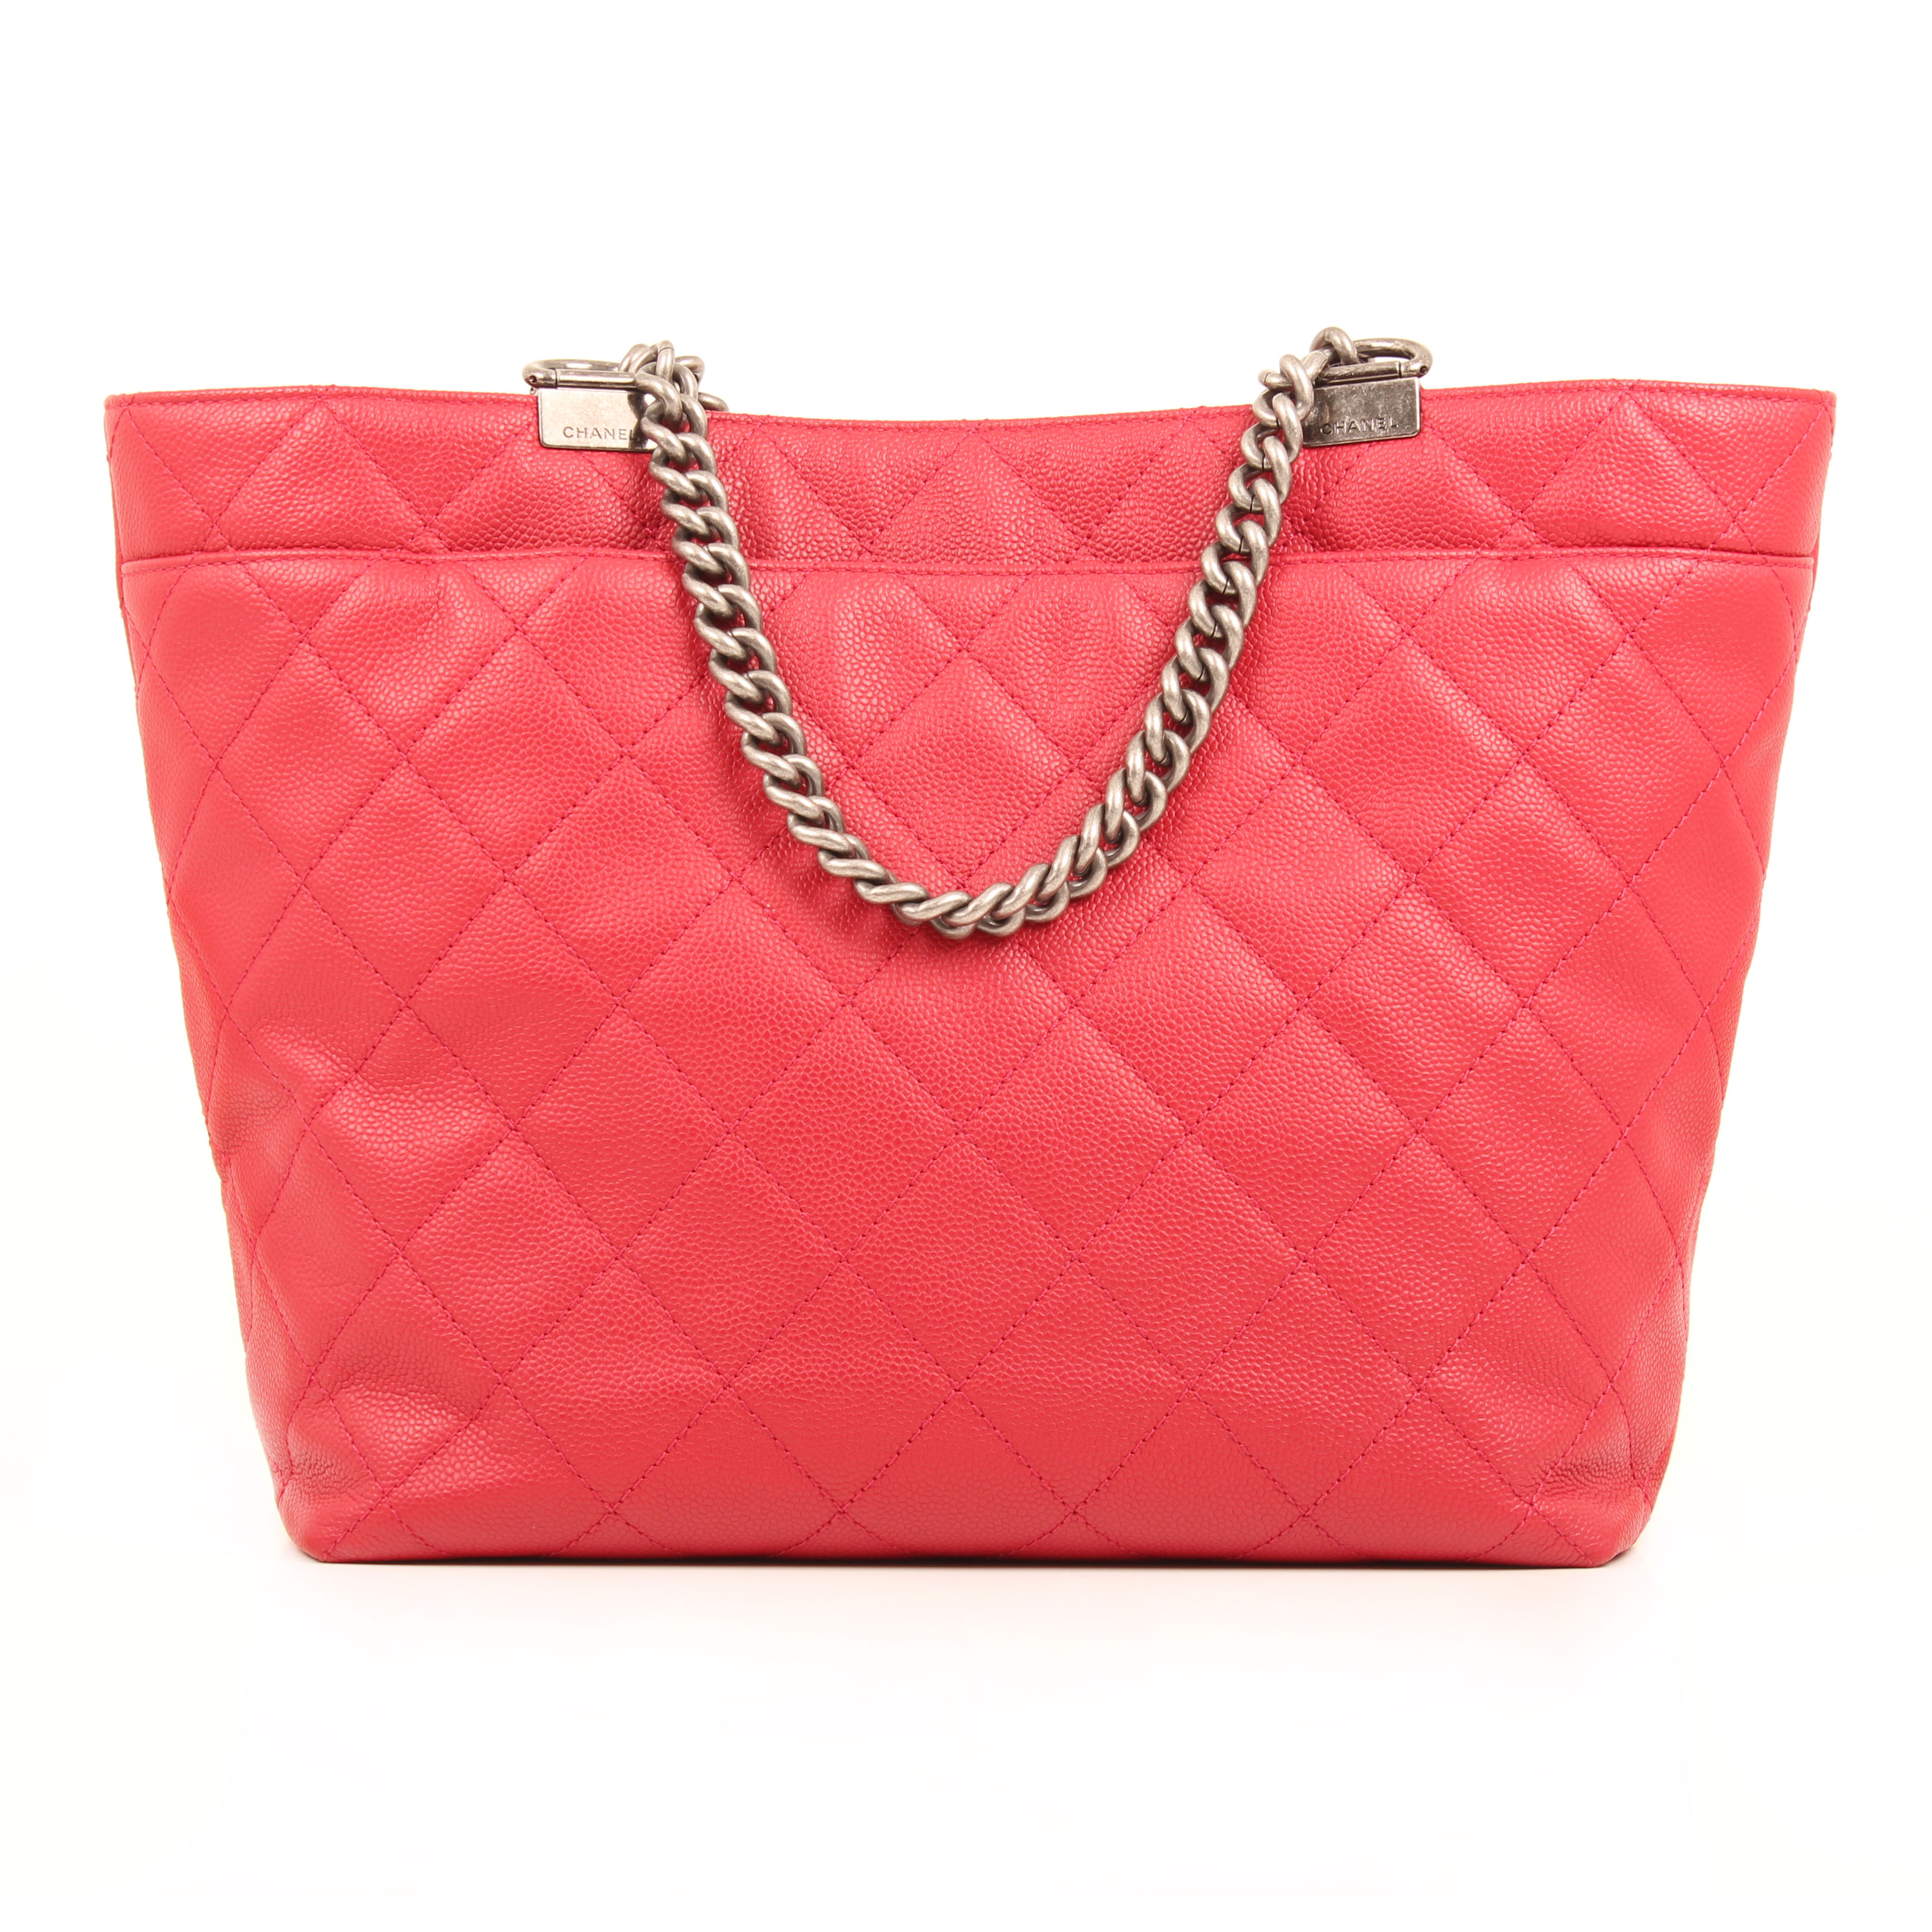 chanel bag tote in chains caviar leather strawberry back